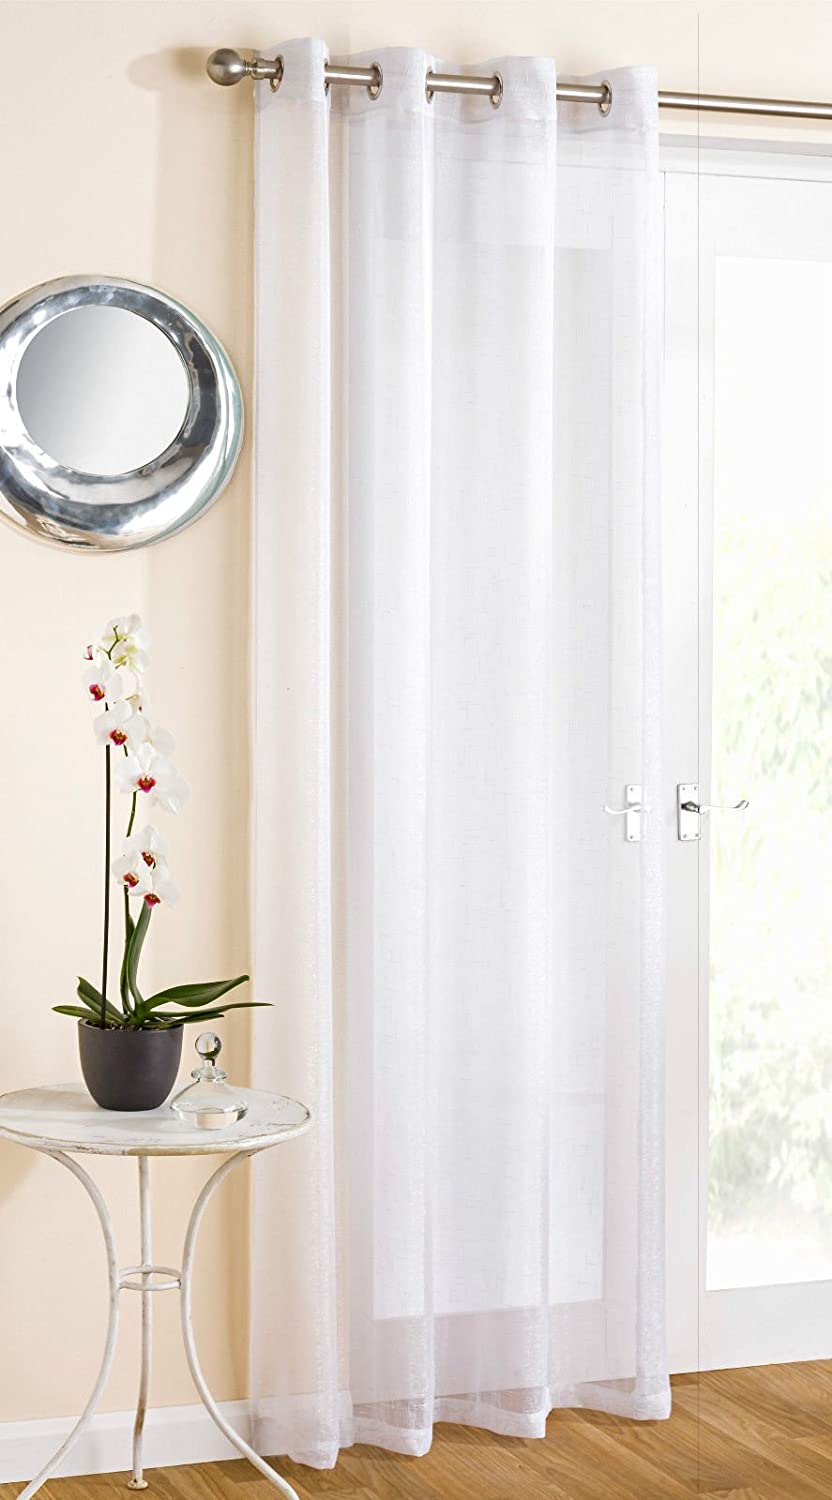 Marie Sparkle Glitter Voile Net Panel Curtain Eyelet Ring Top White 90 Drop Amazoncouk Kitchen Home